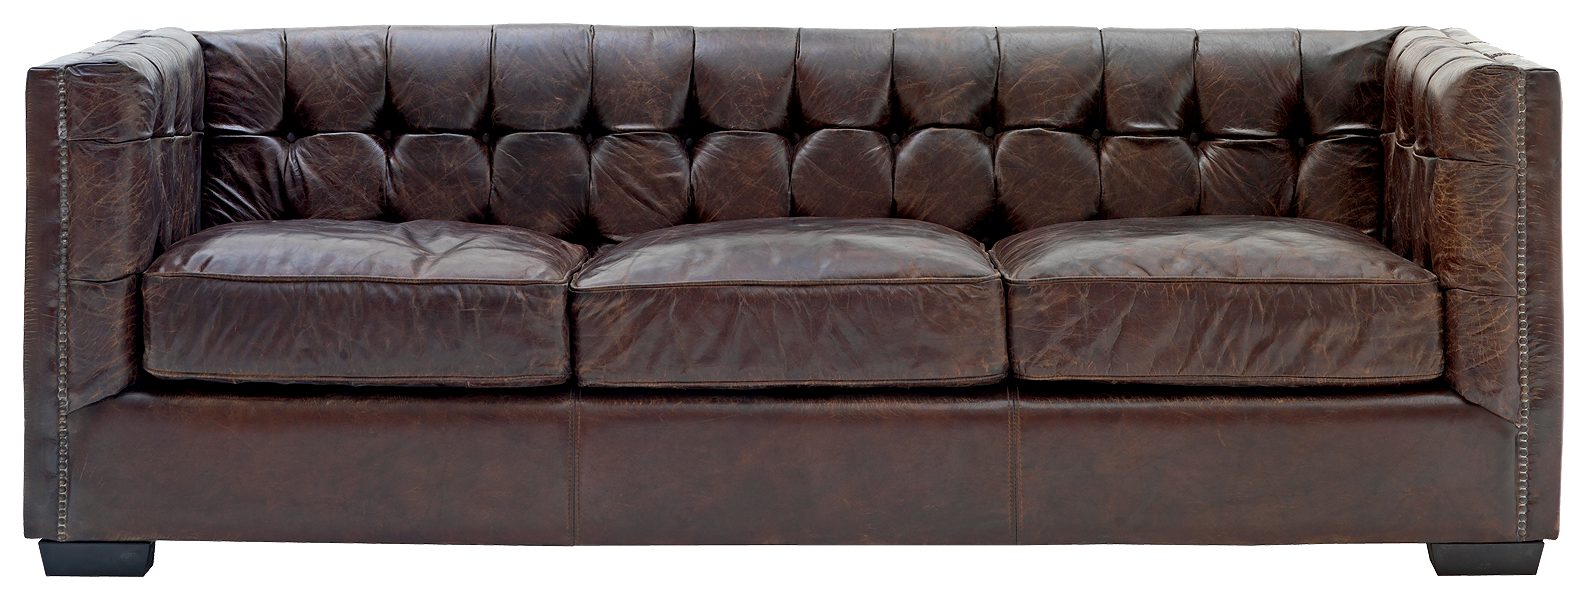 Old couch png. Sofa images free download